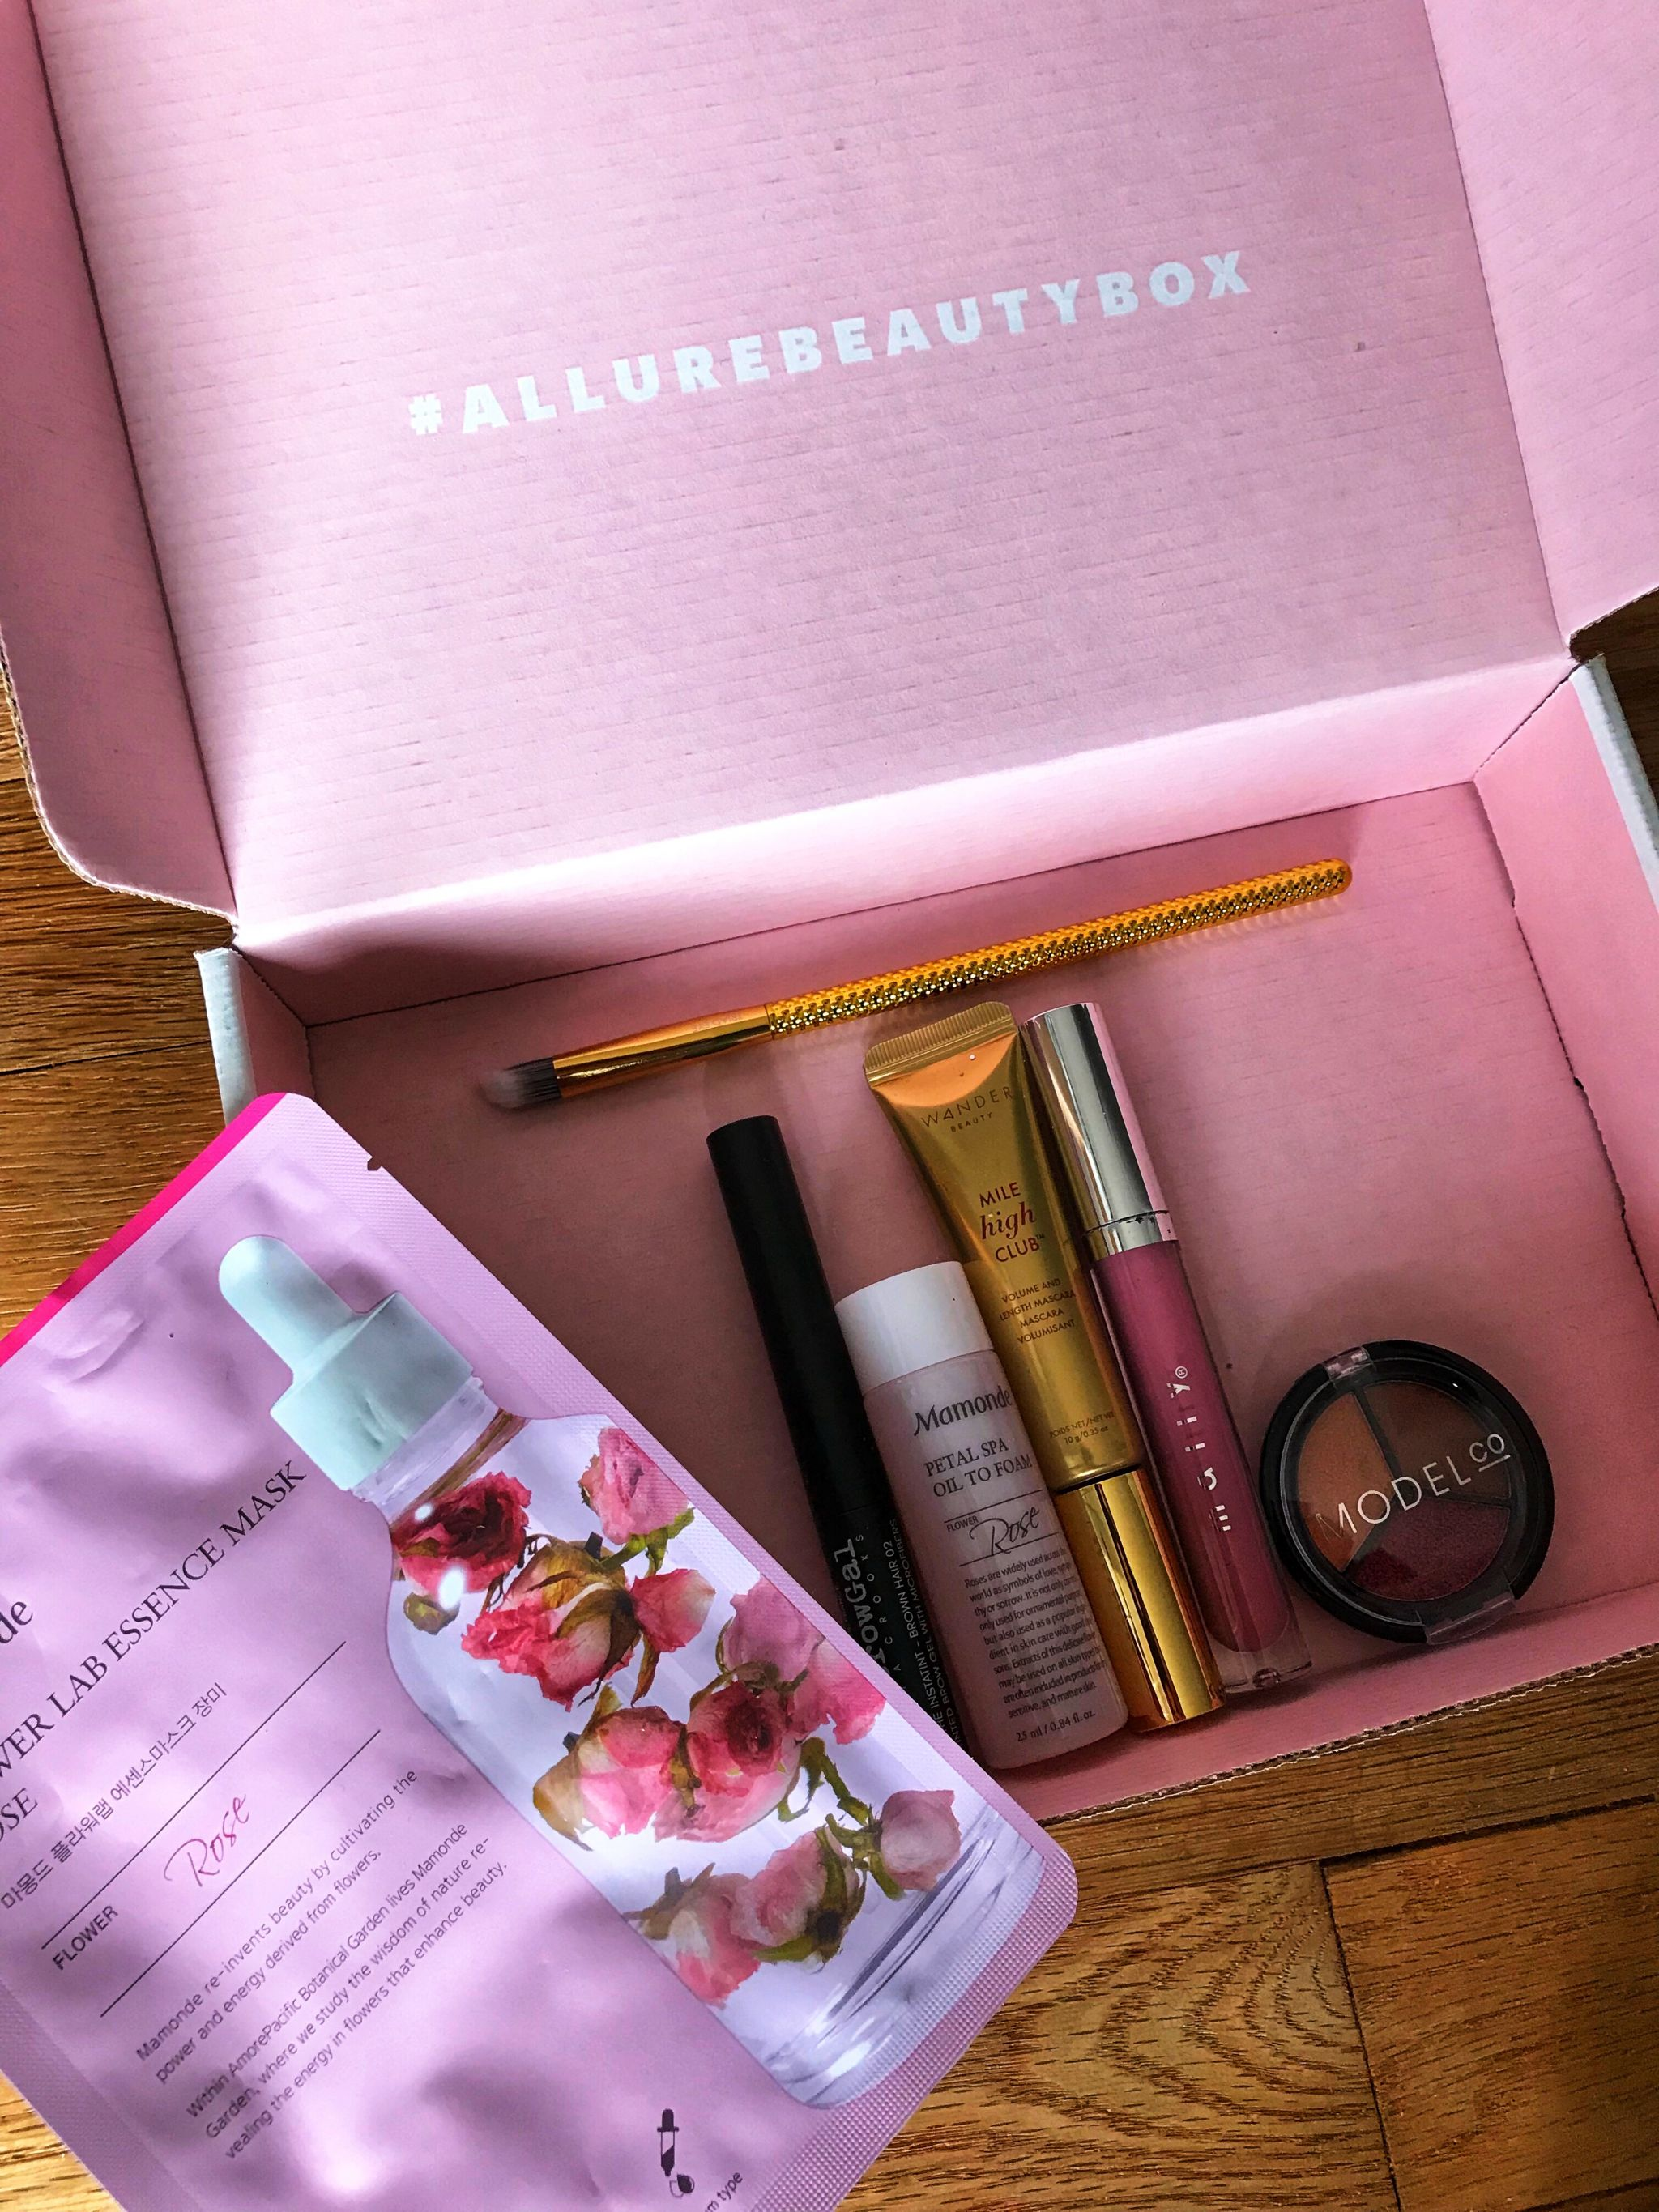 Allure Beauty Box Review on JK Style